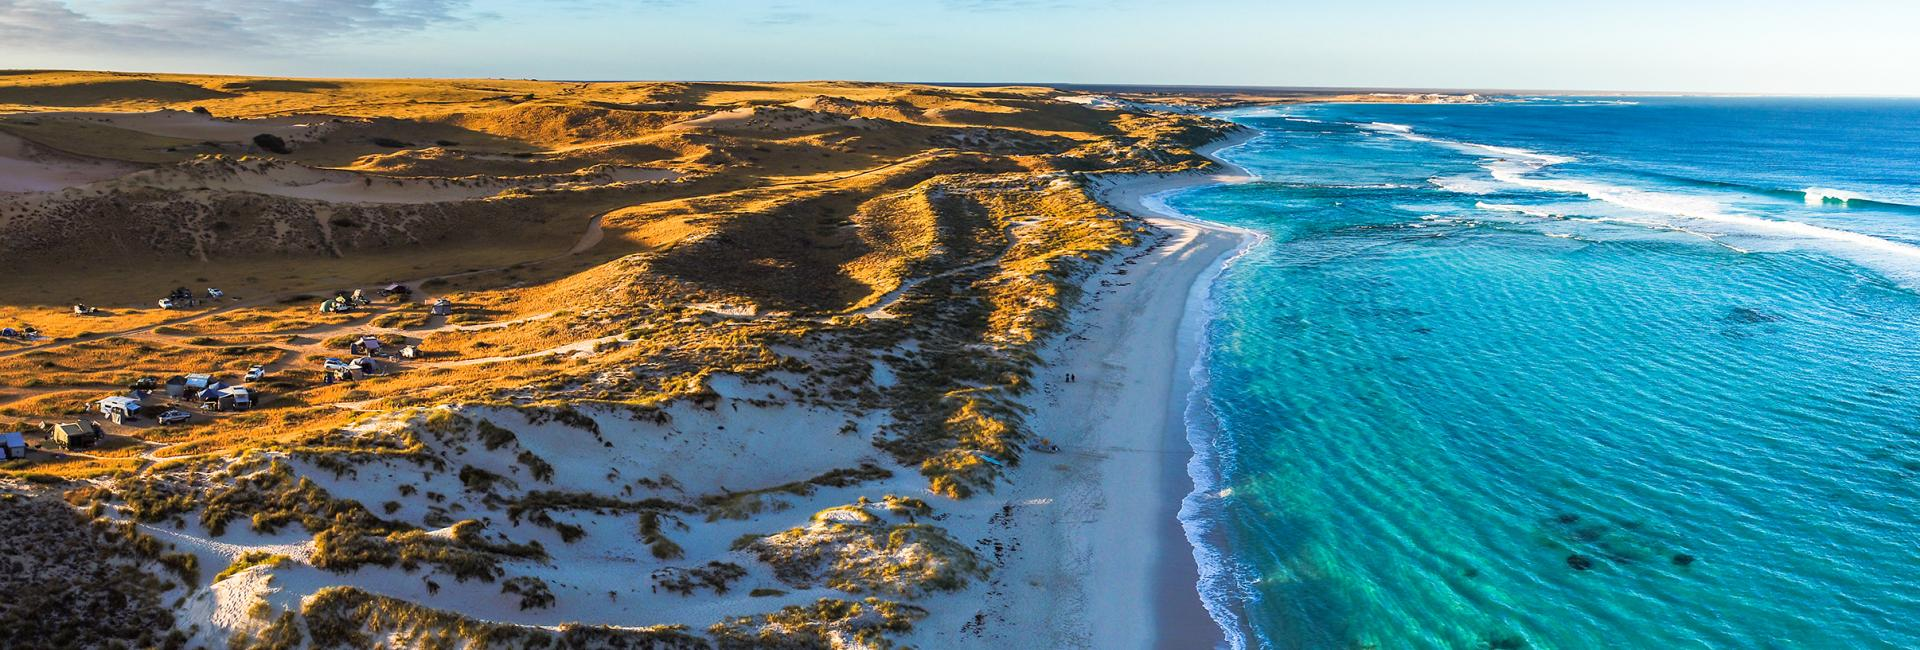 Warroora Outback Cattle Station beach Western Australia